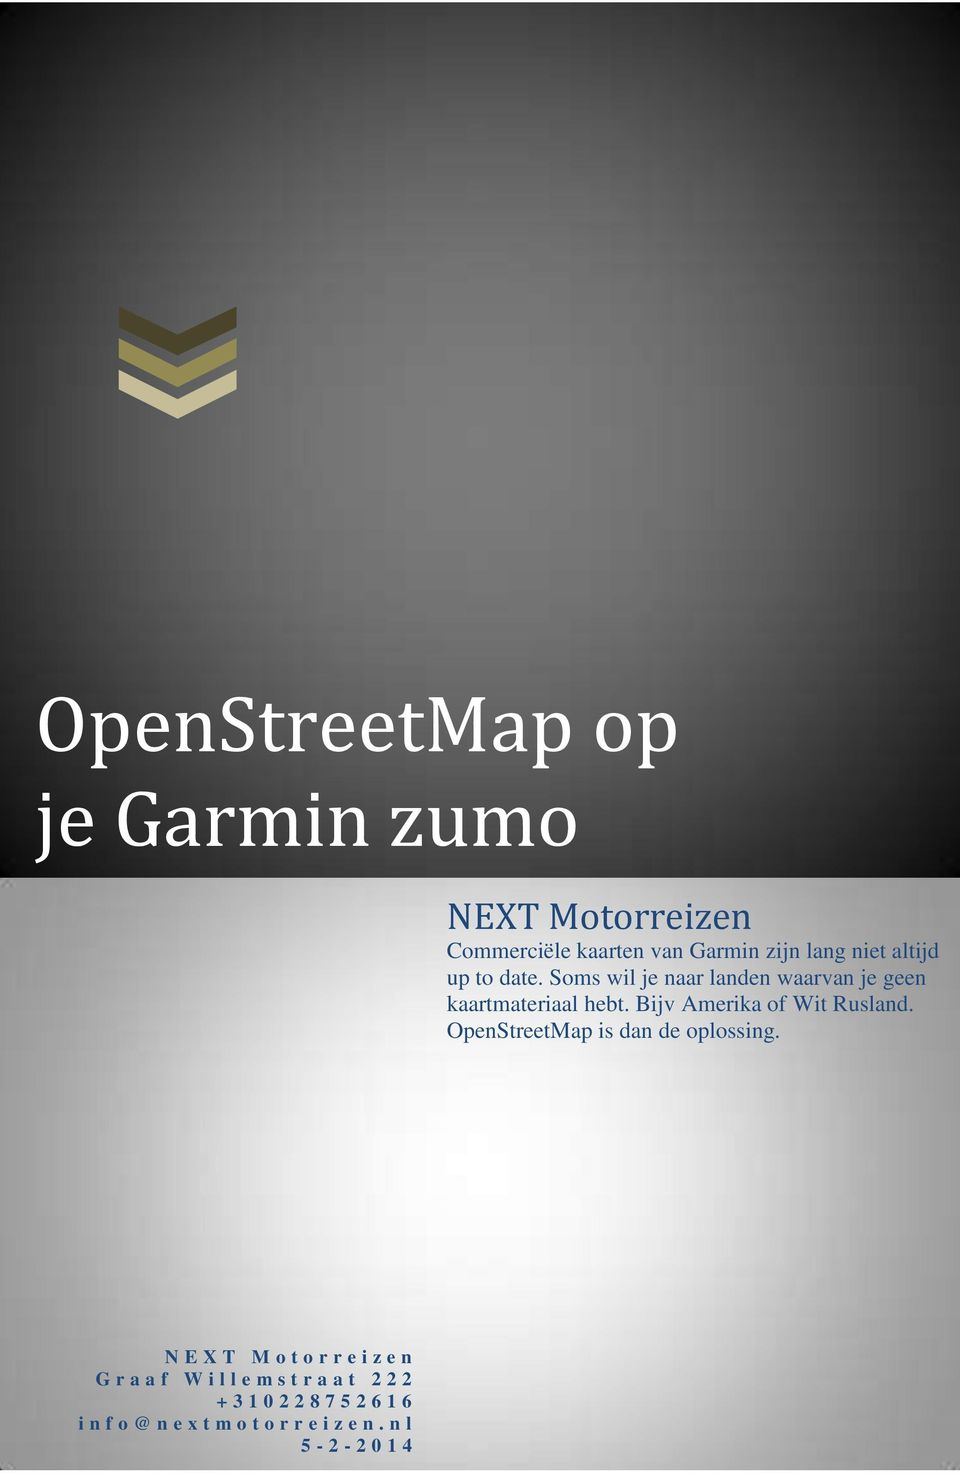 Bijv Amerika of Wit Rusland. OpenStreetMap is dan de oplossing.